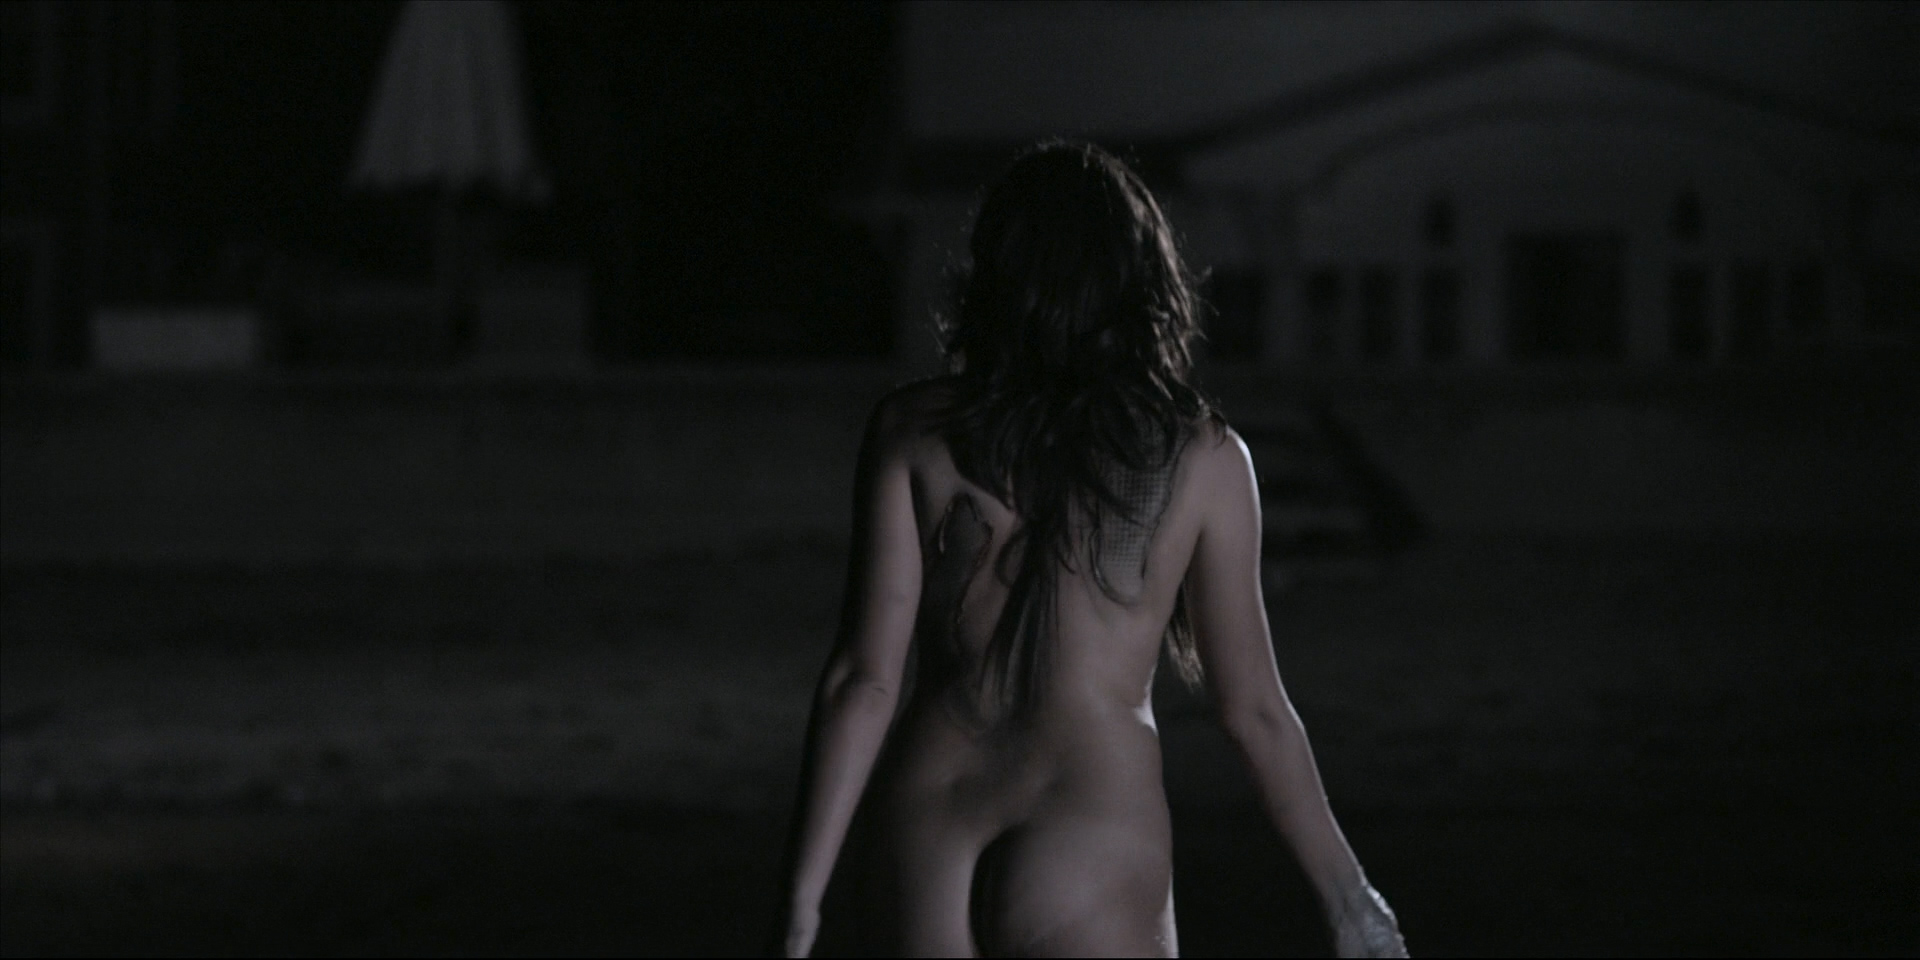 Victoria Johnstone nude butt boobs and Meredith Majors nude but covered – Lake Eerie (2016) HD 1080p (4)